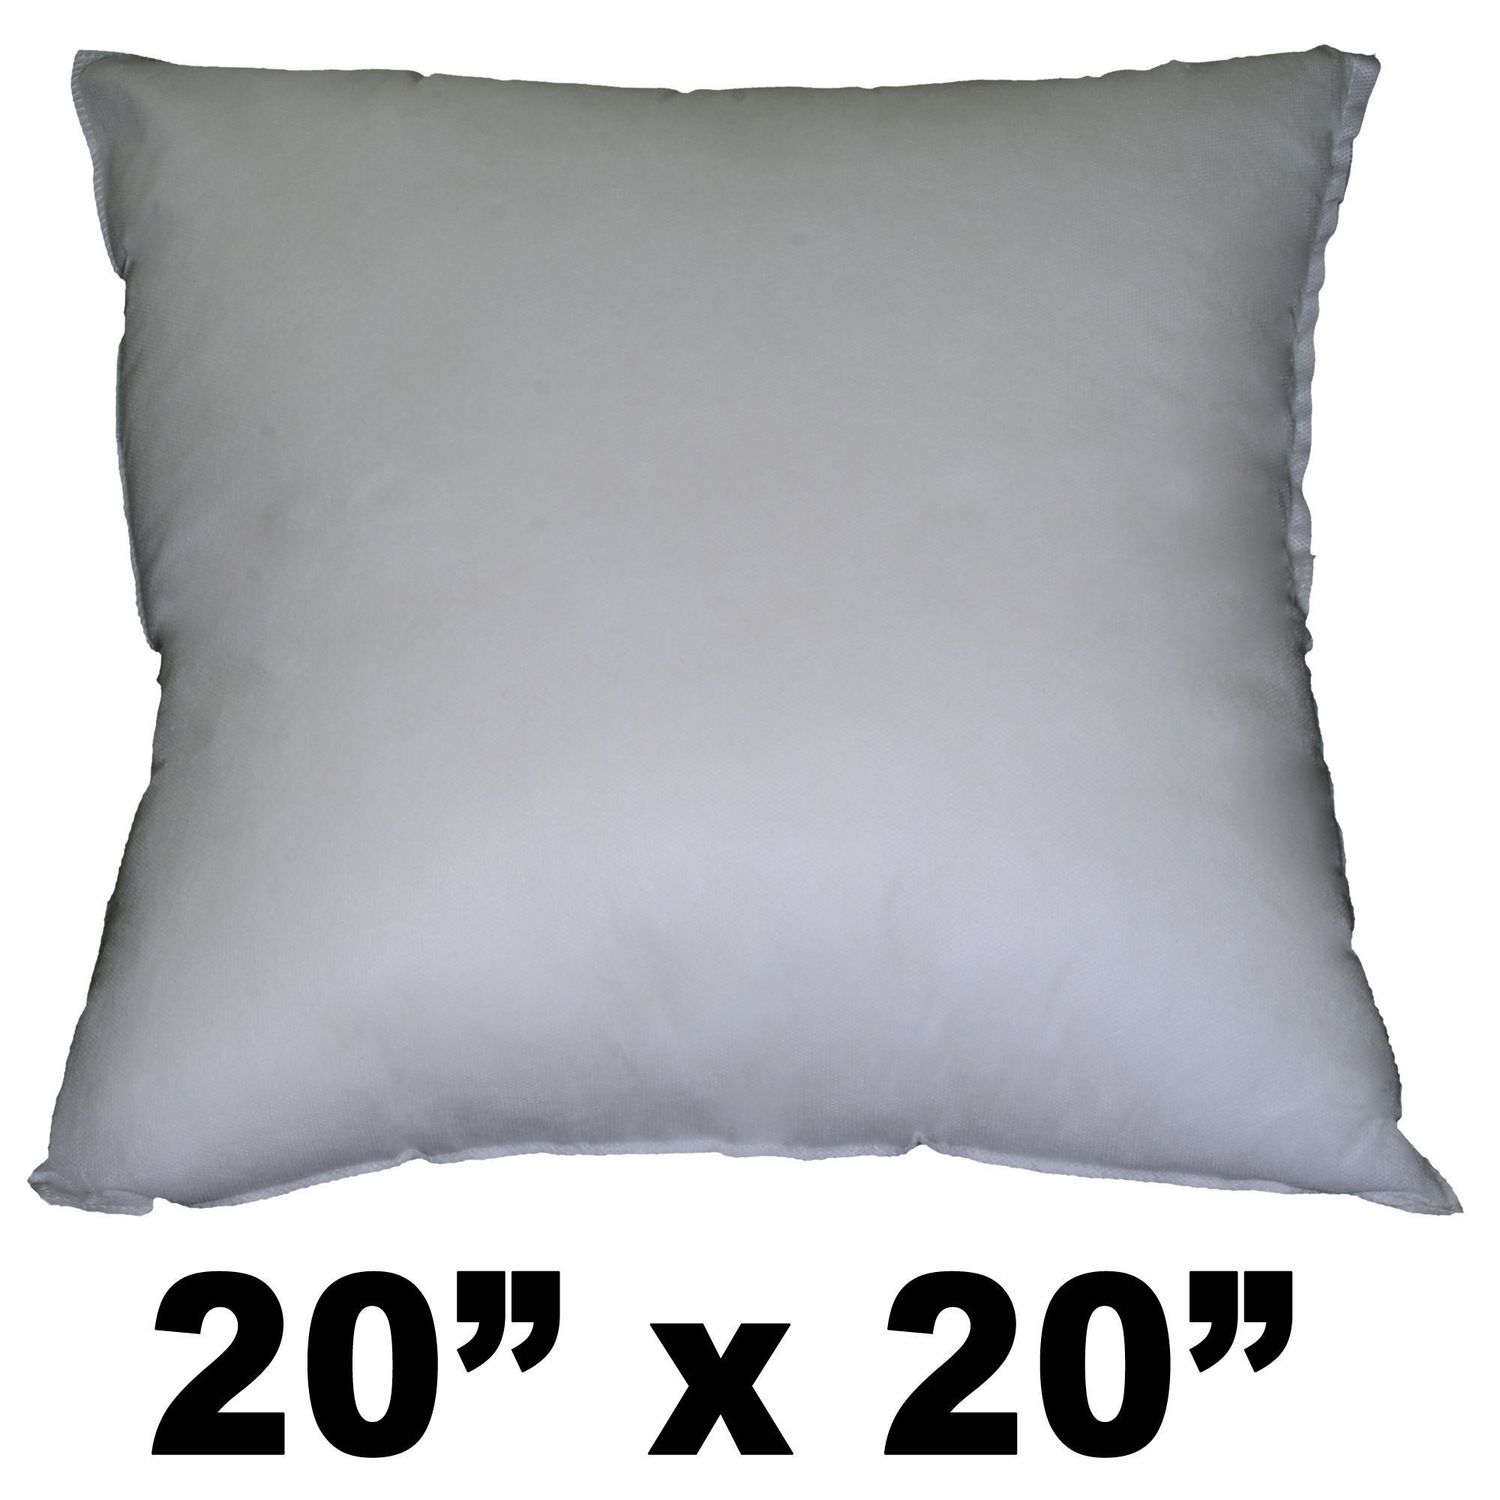 Hometex Square Polyester Fill Pillow Form Walmart Canada